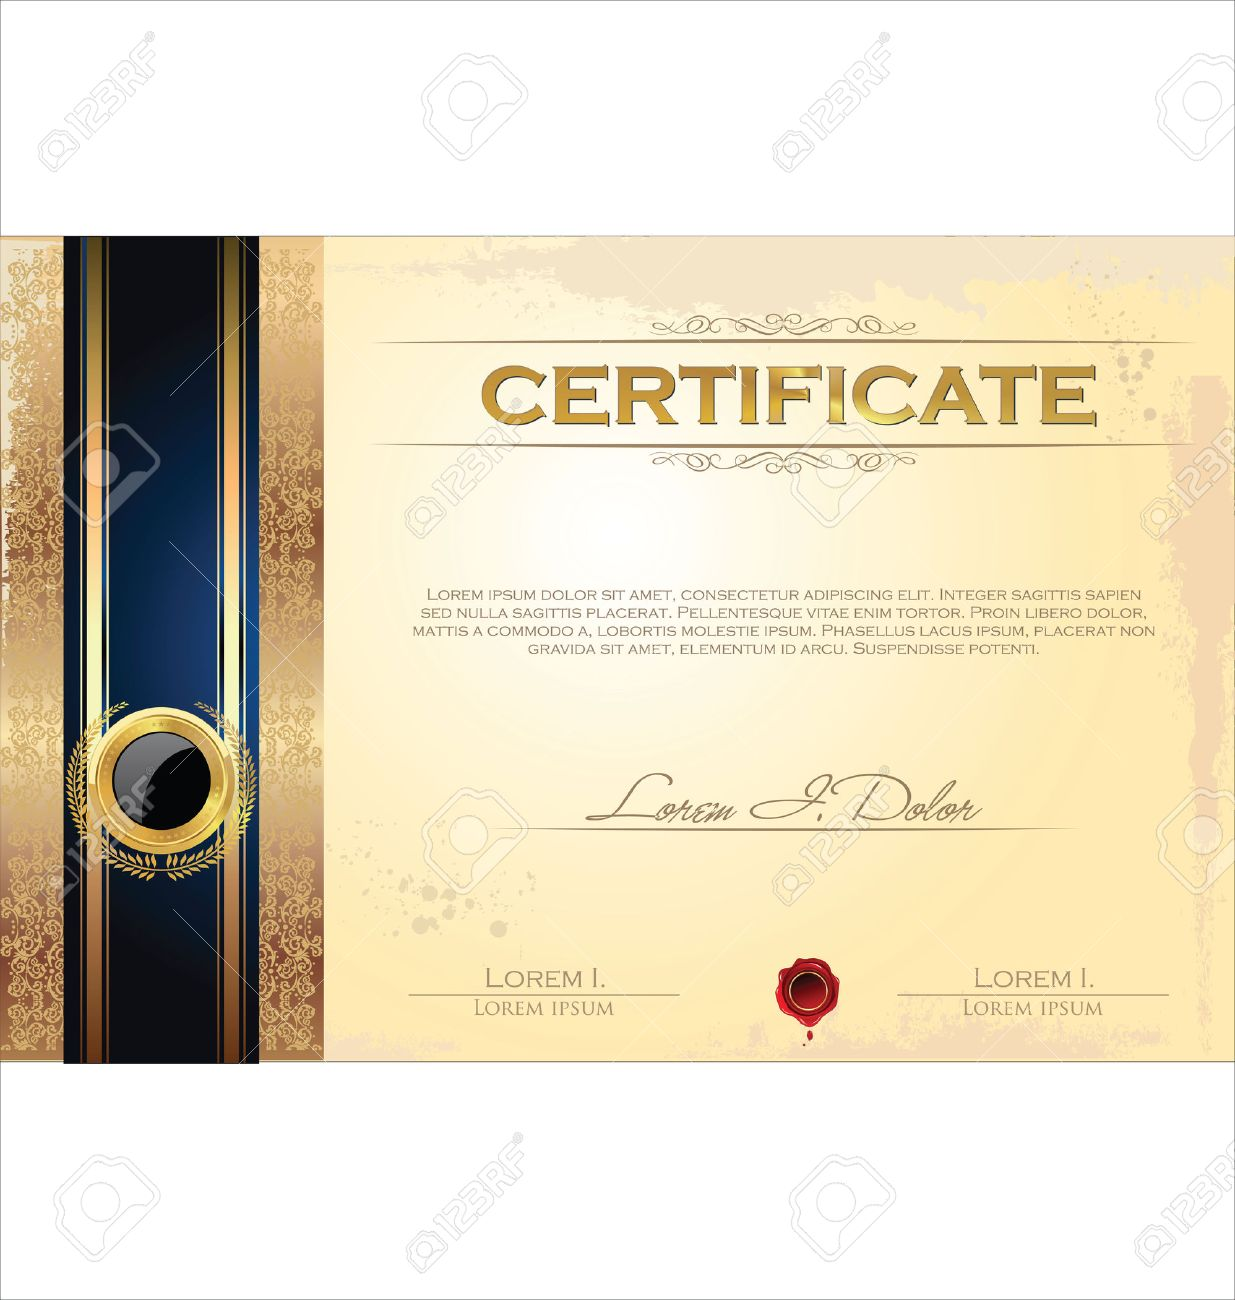 Certificate or diploma template, vector illustration Stock Vector - 23200519